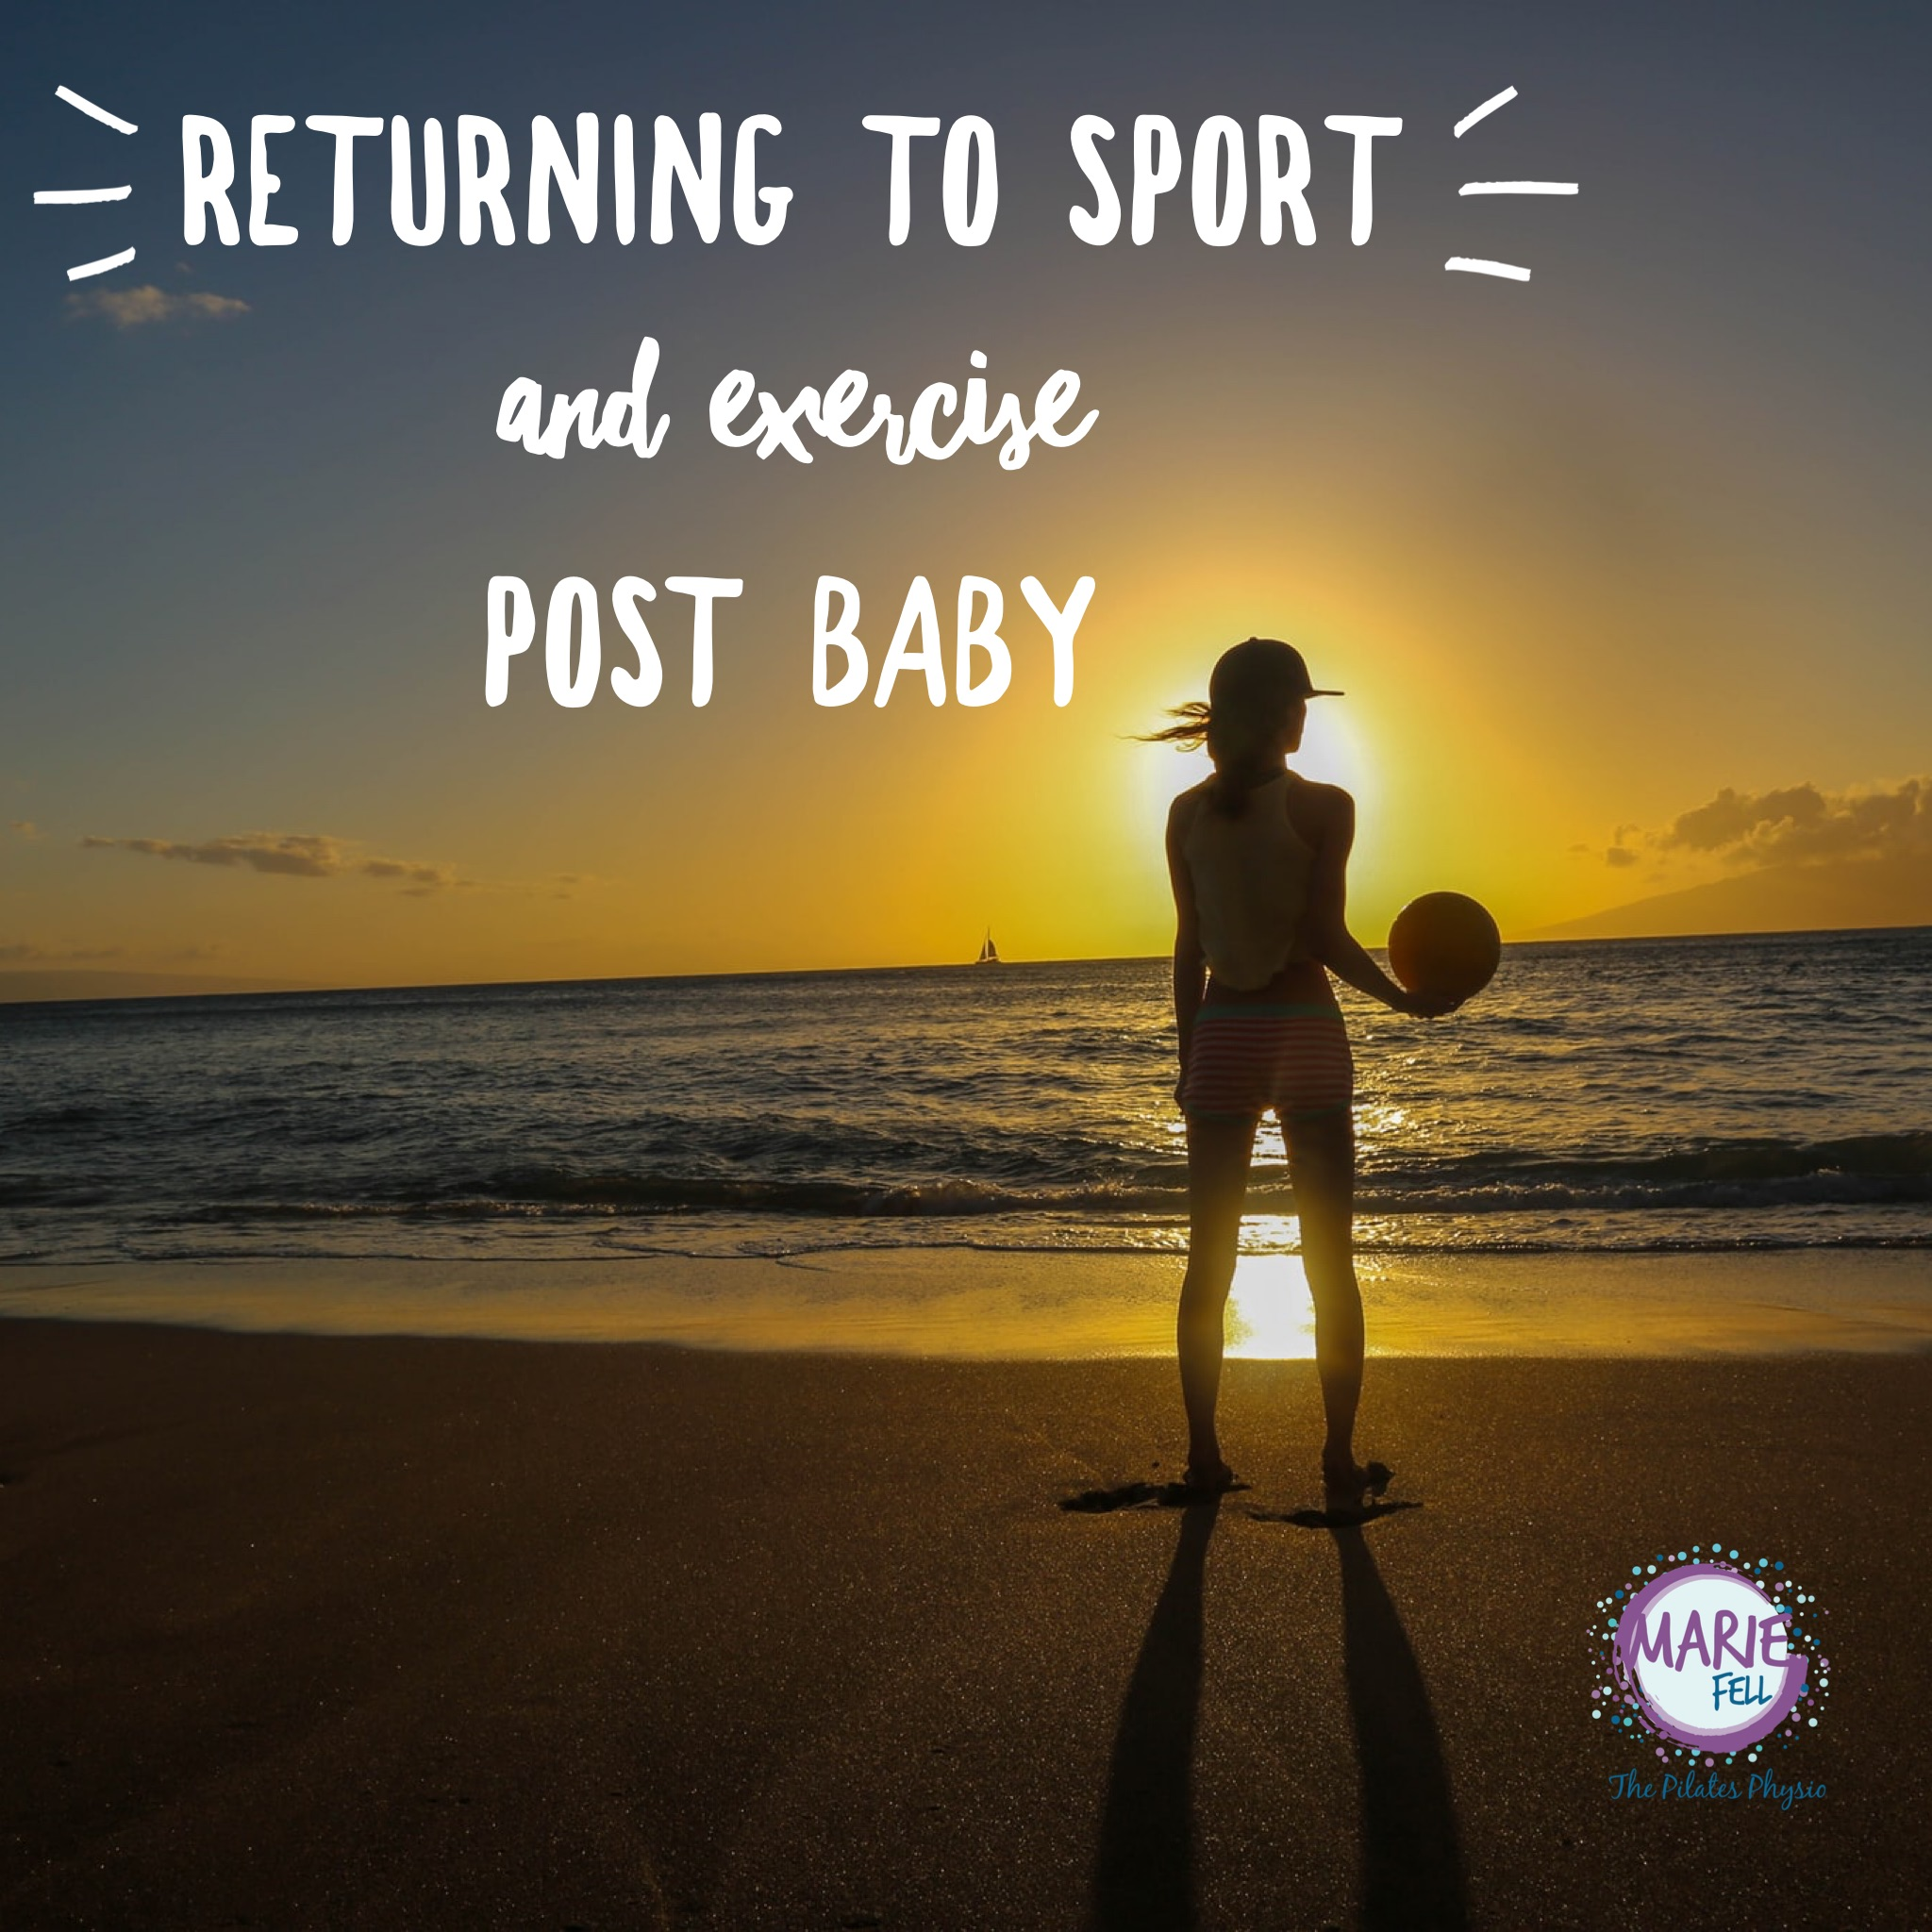 Returning to sport and exercise post baby